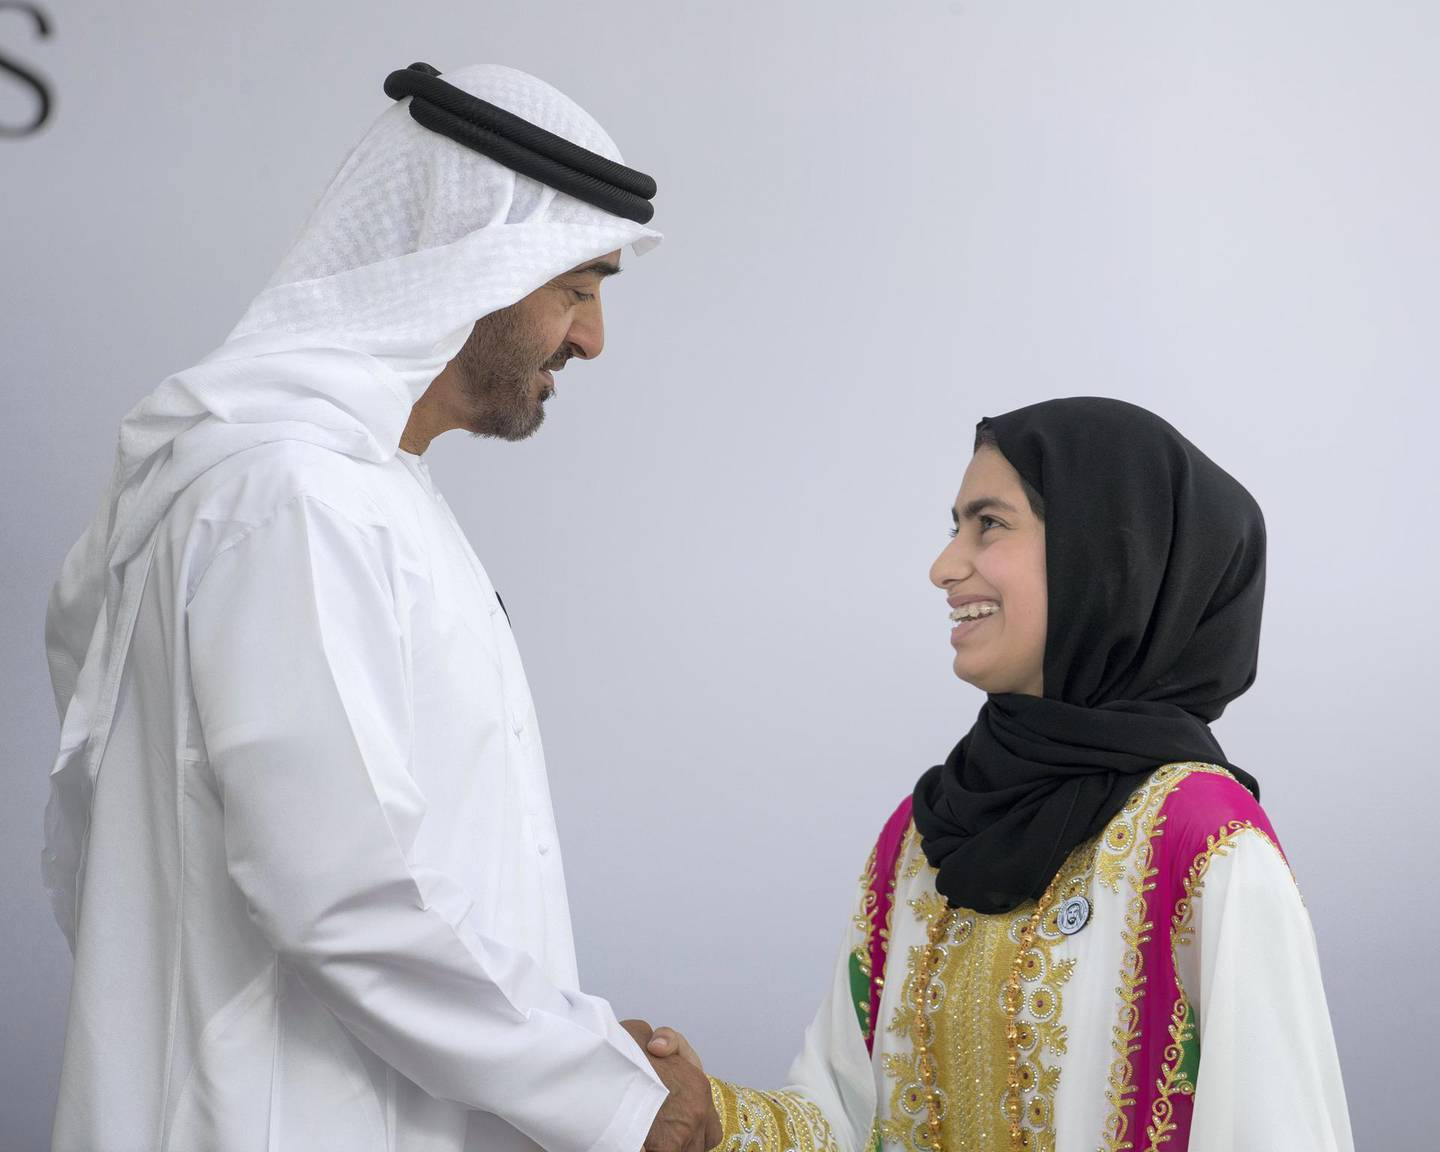 ABU DHABI, UNITED ARAB EMIRATES -  March 12, 2018: HH Sheikh Mohamed bin Zayed Al Nahyan, Crown Prince of Abu Dhabi and Deputy Supreme Commander of the UAE Armed Forces (L), presents an Abu Dhabi Award to Fatima Ali Al Kaabi (R), during the awards ceremony at the Sea Palace. ( Ryan Carter for the Crown Prince Court - Abu Dhabi ) ---